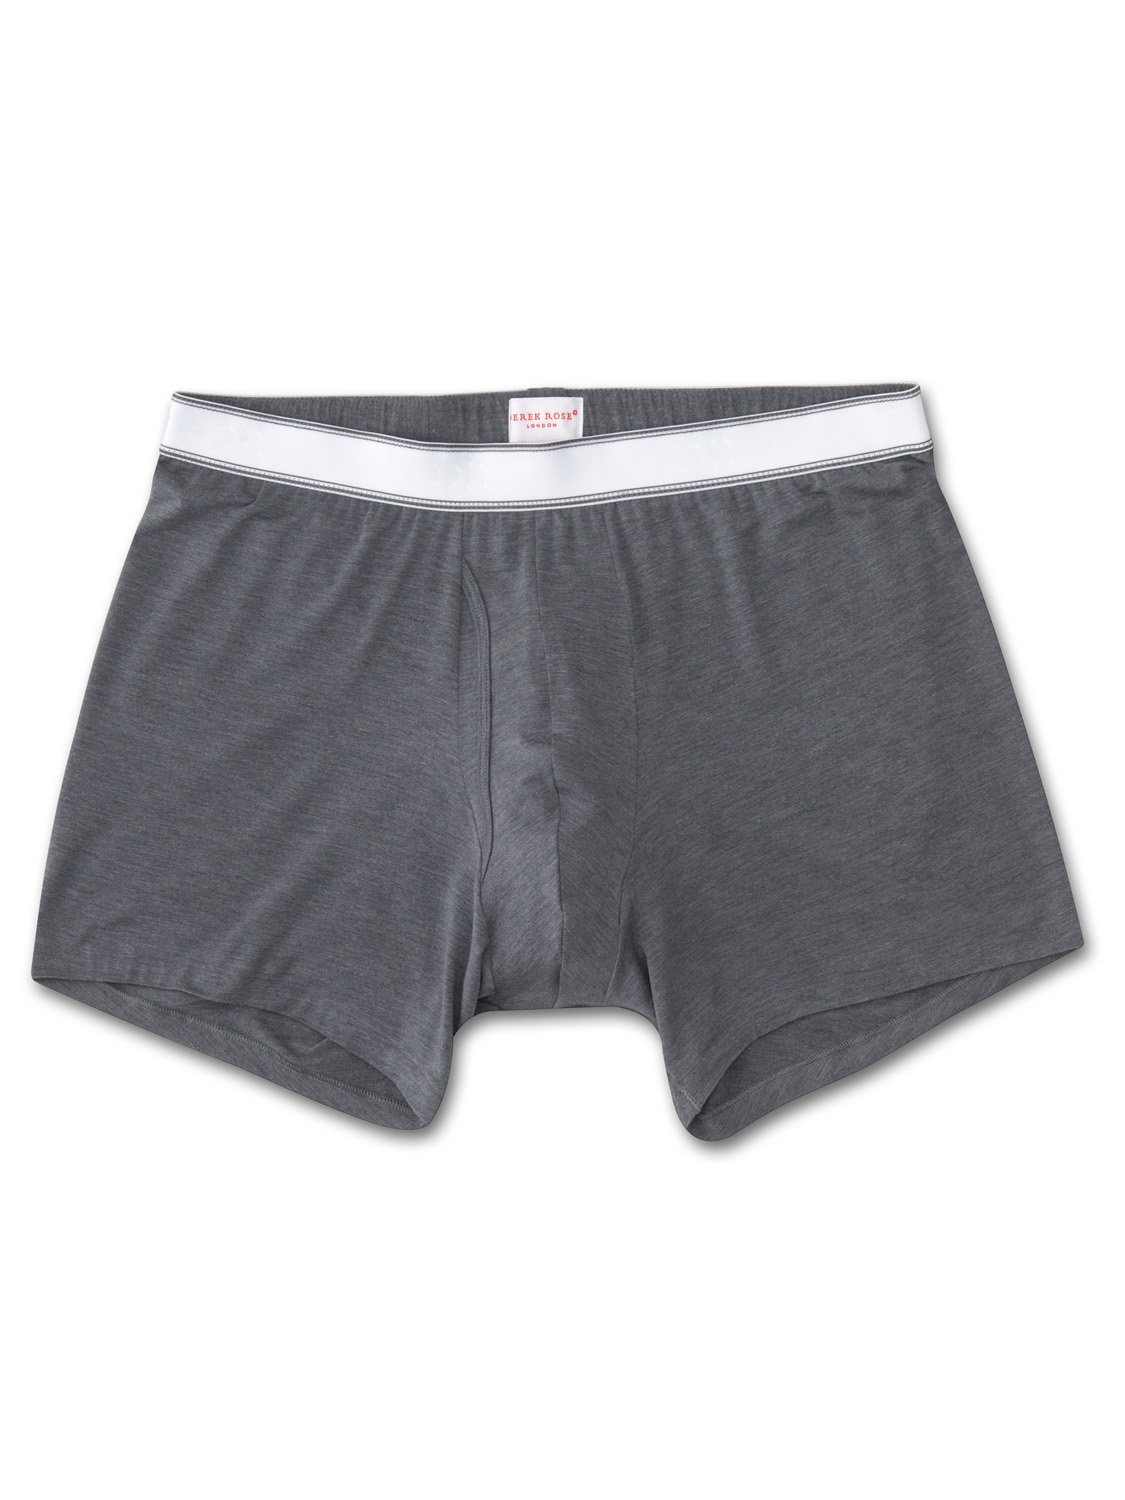 Men's Trunks Ethan 2 Micro Modal Stretch Charcoal